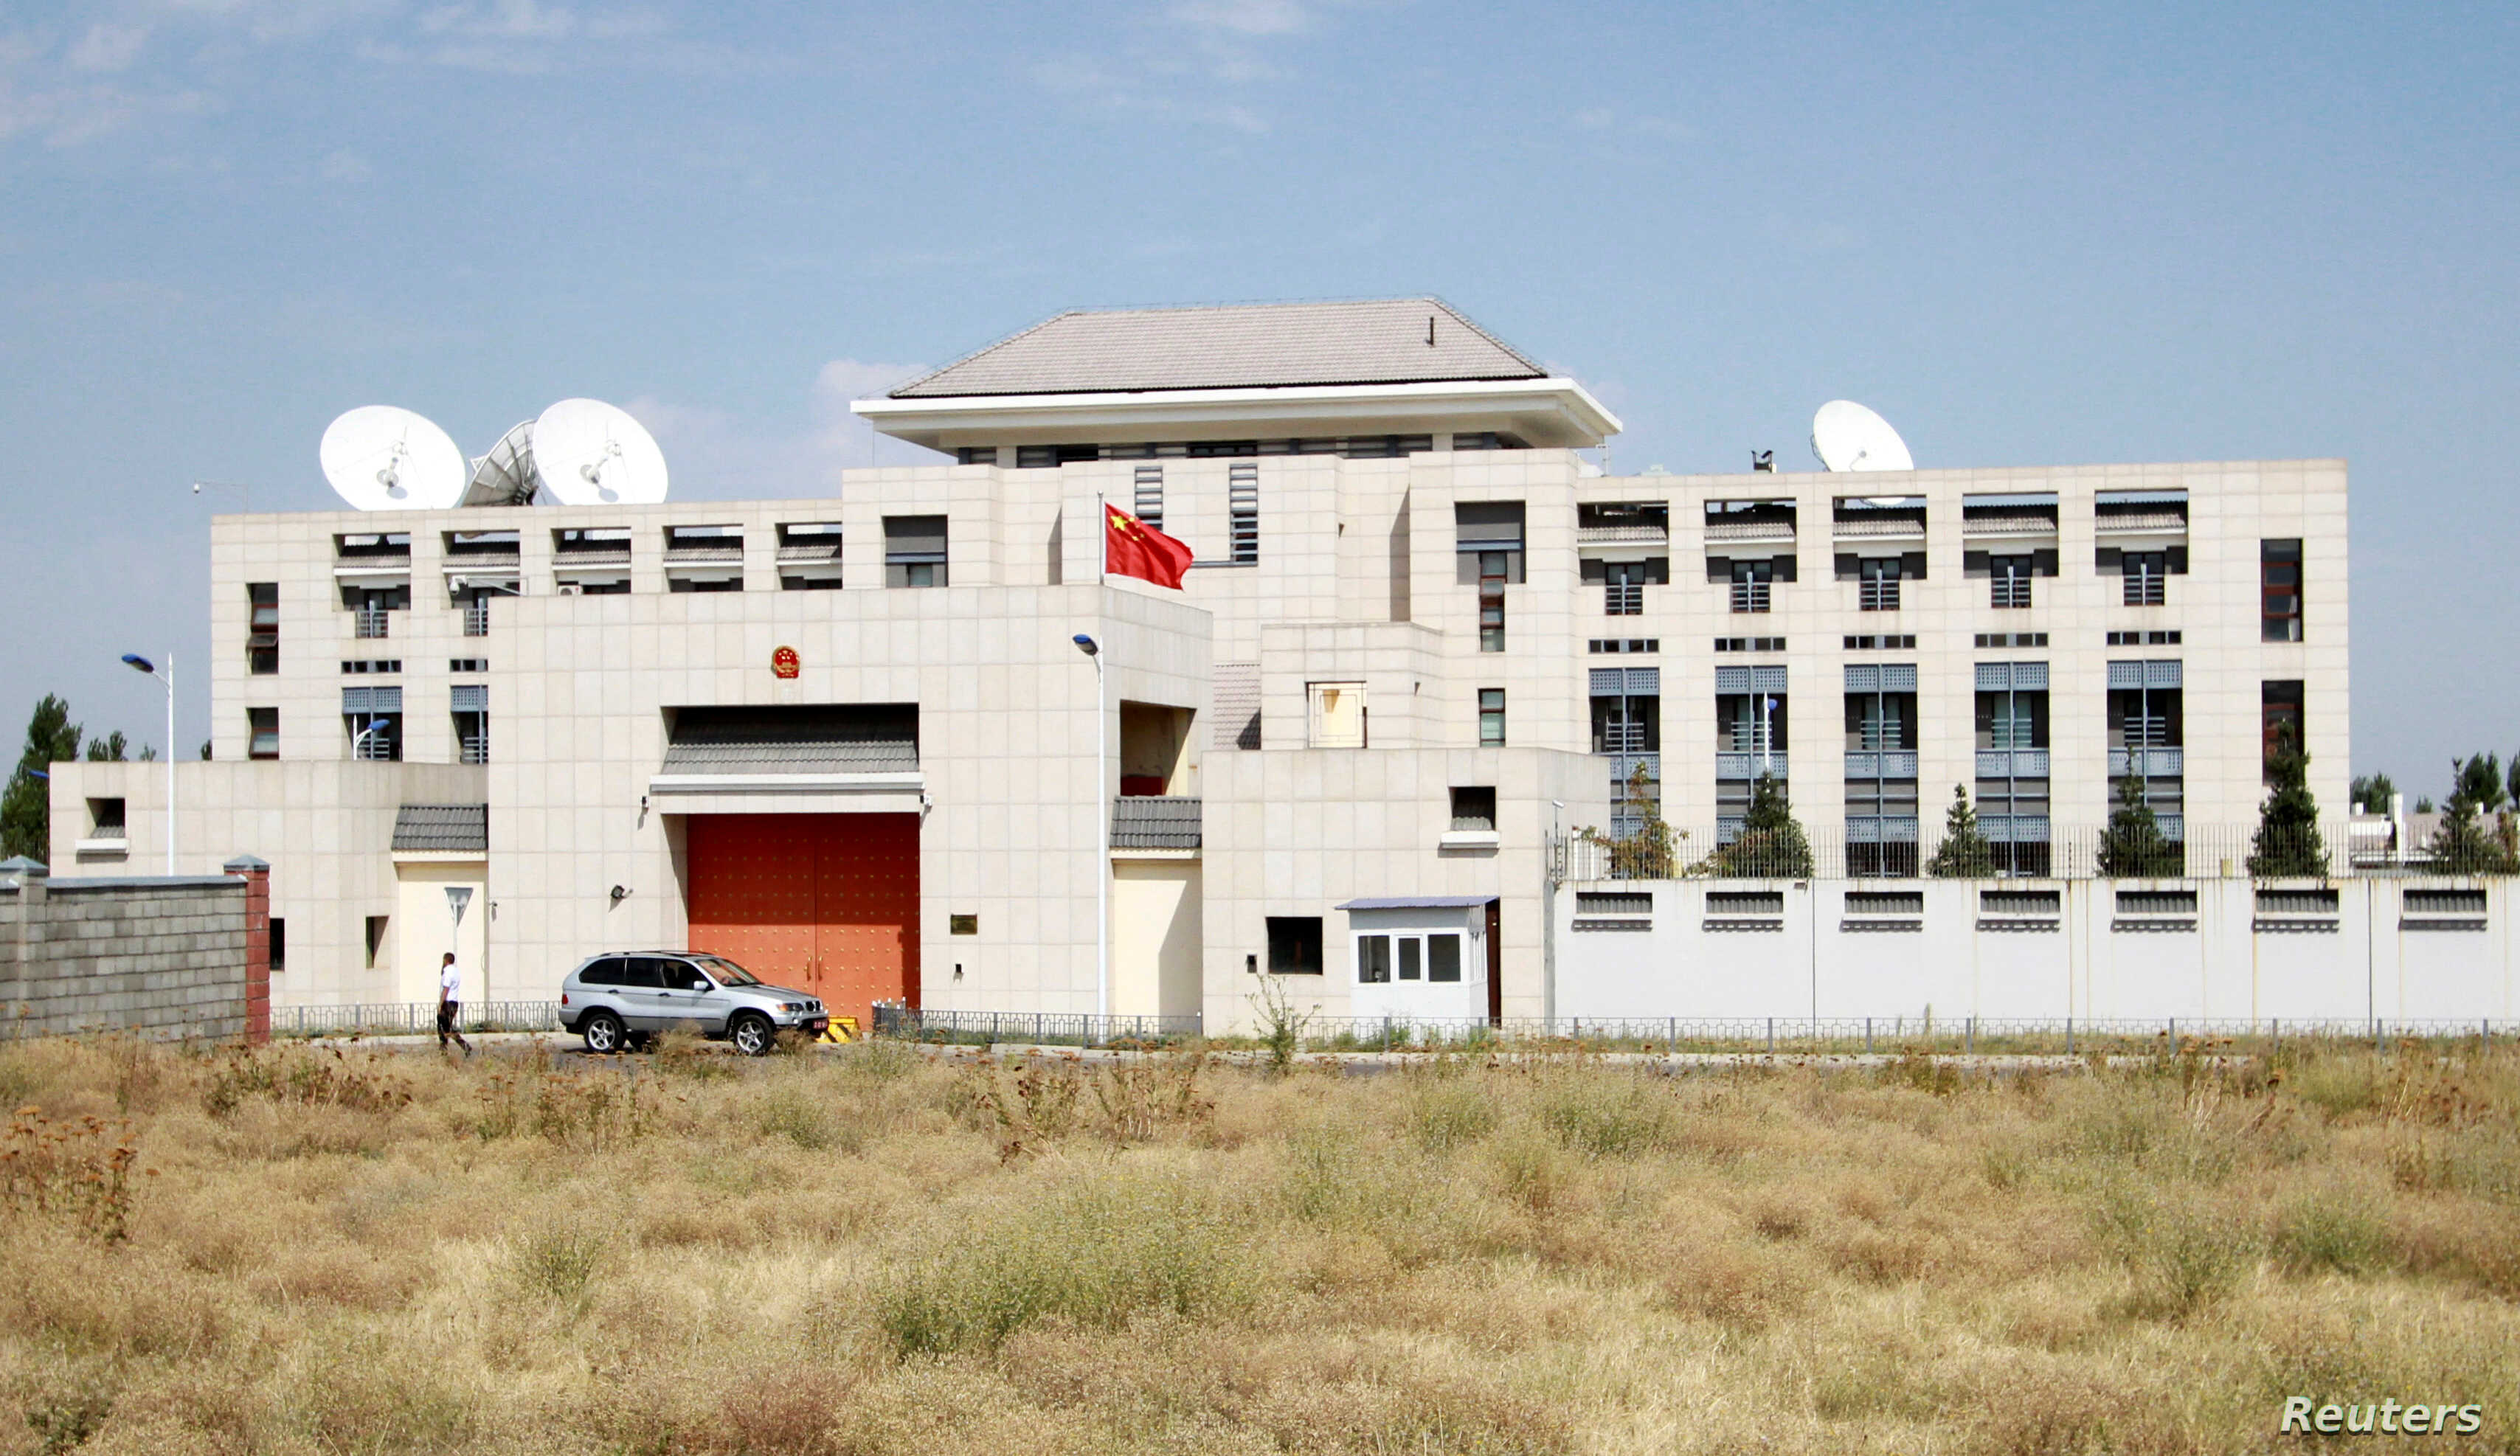 A general view shows China's embassy in Bishkek, Kyrgyzstan, August 30, 2016.